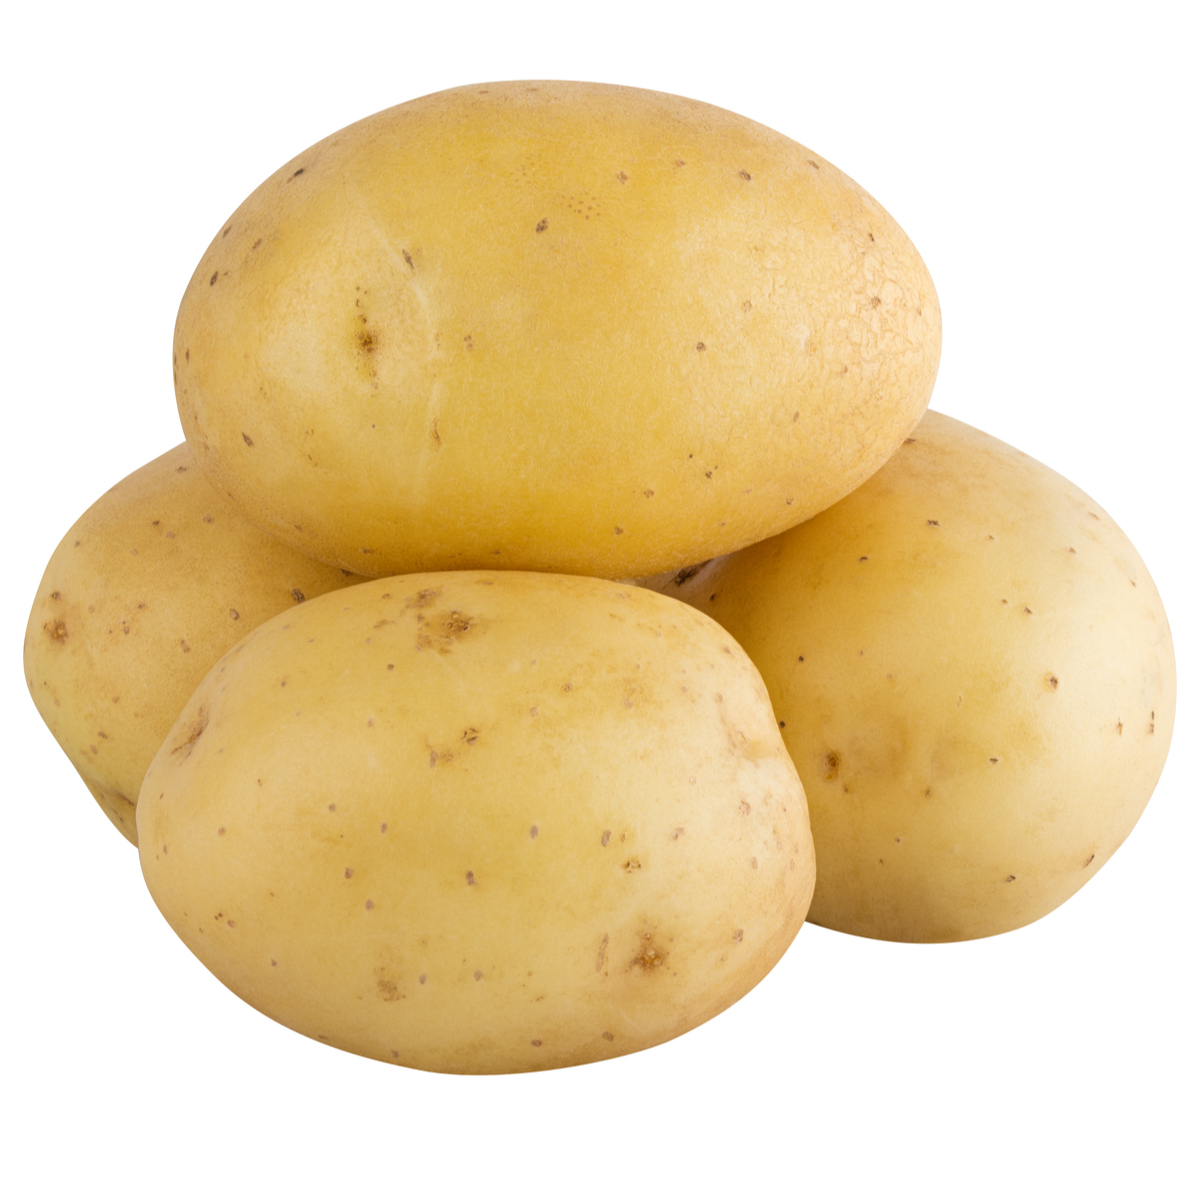 Potatoes-2.jpg